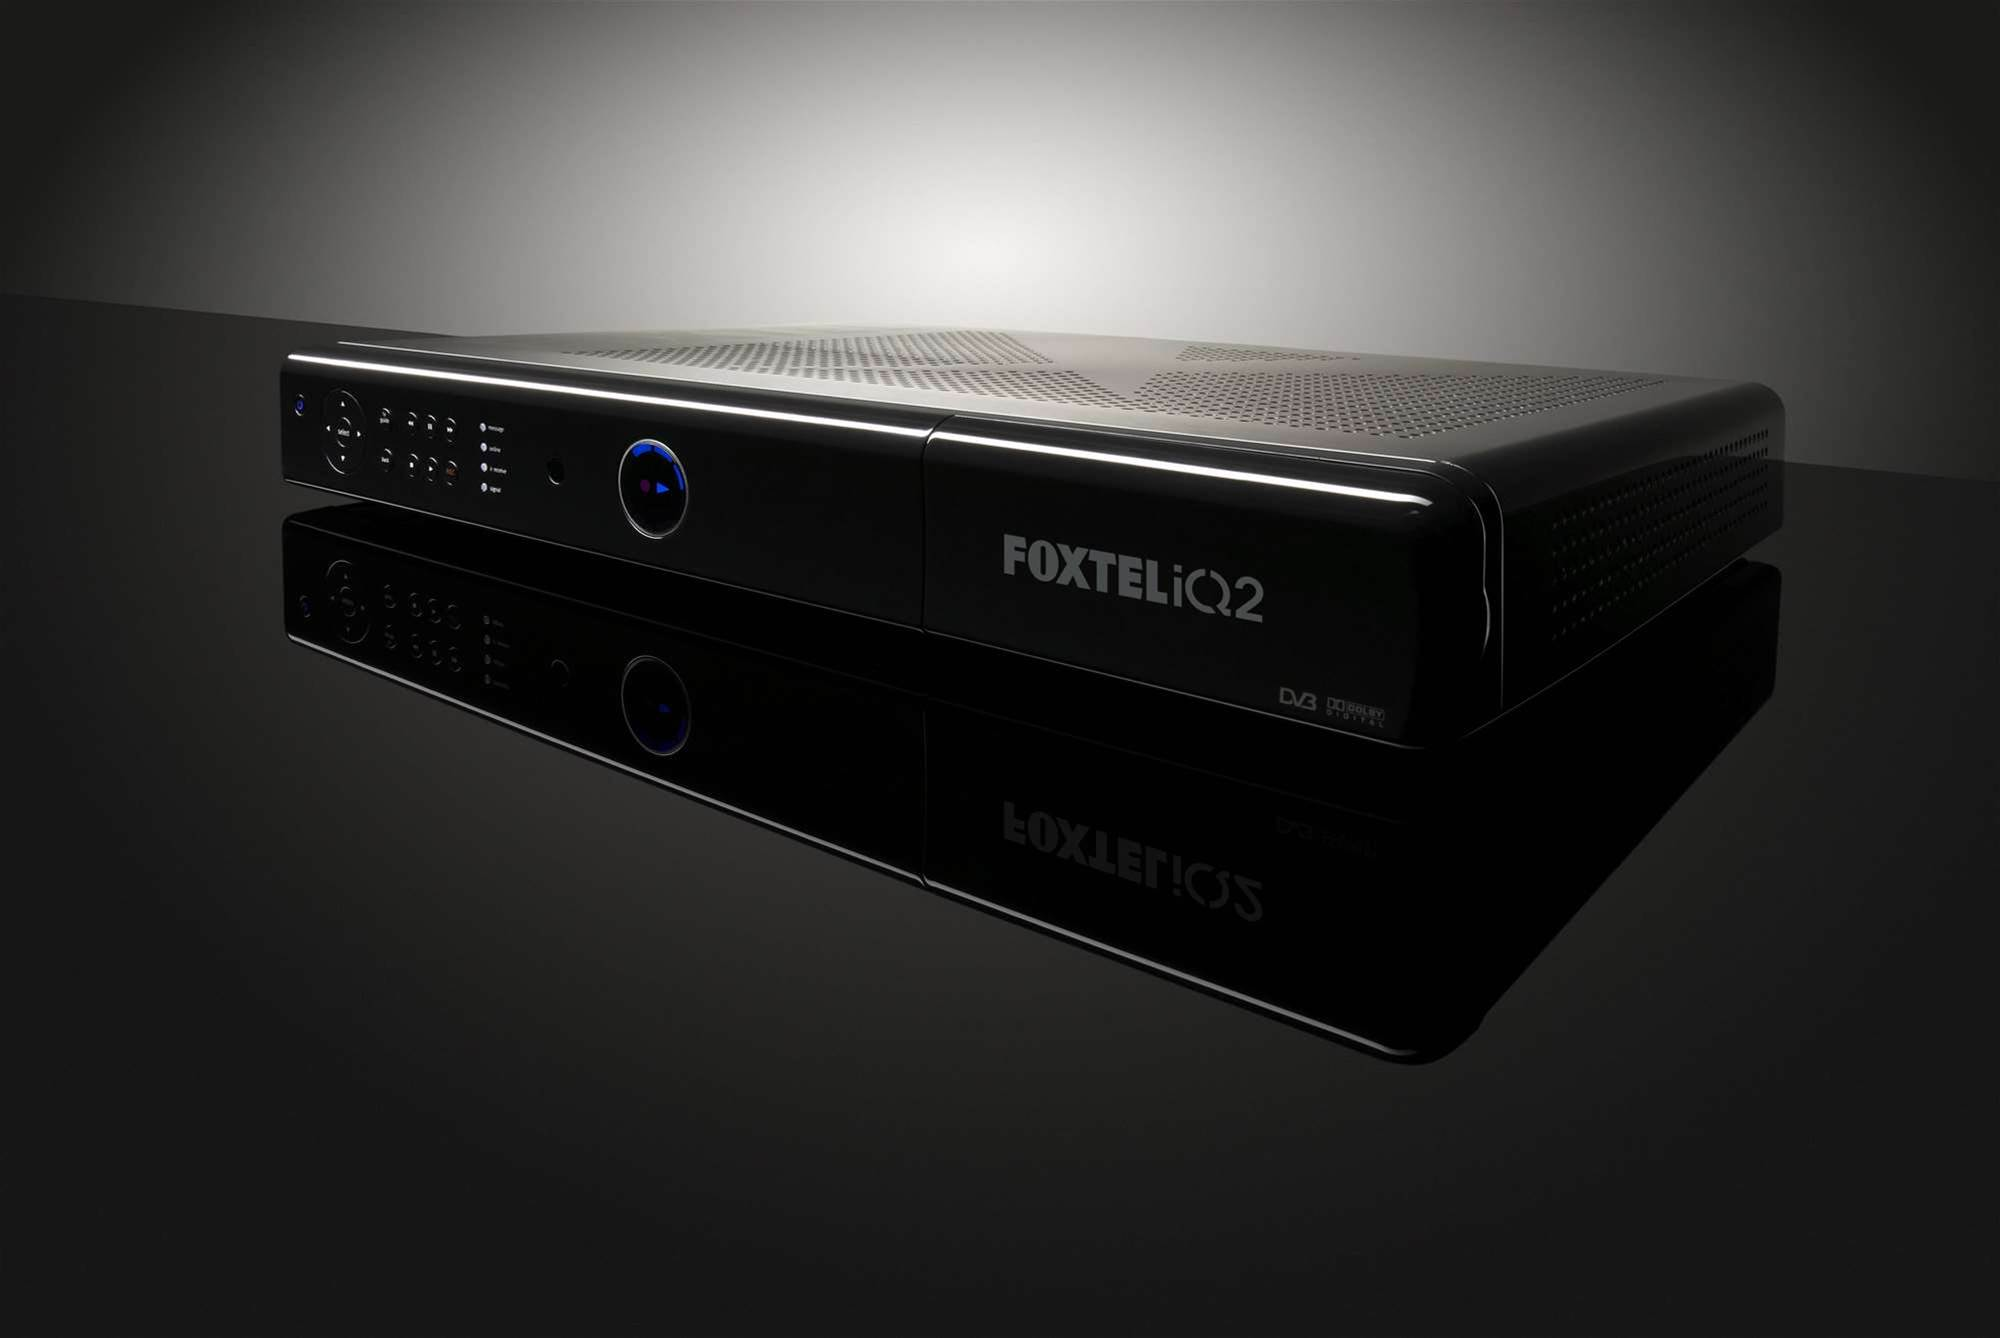 Will Freeview work with Foxtel iQ?